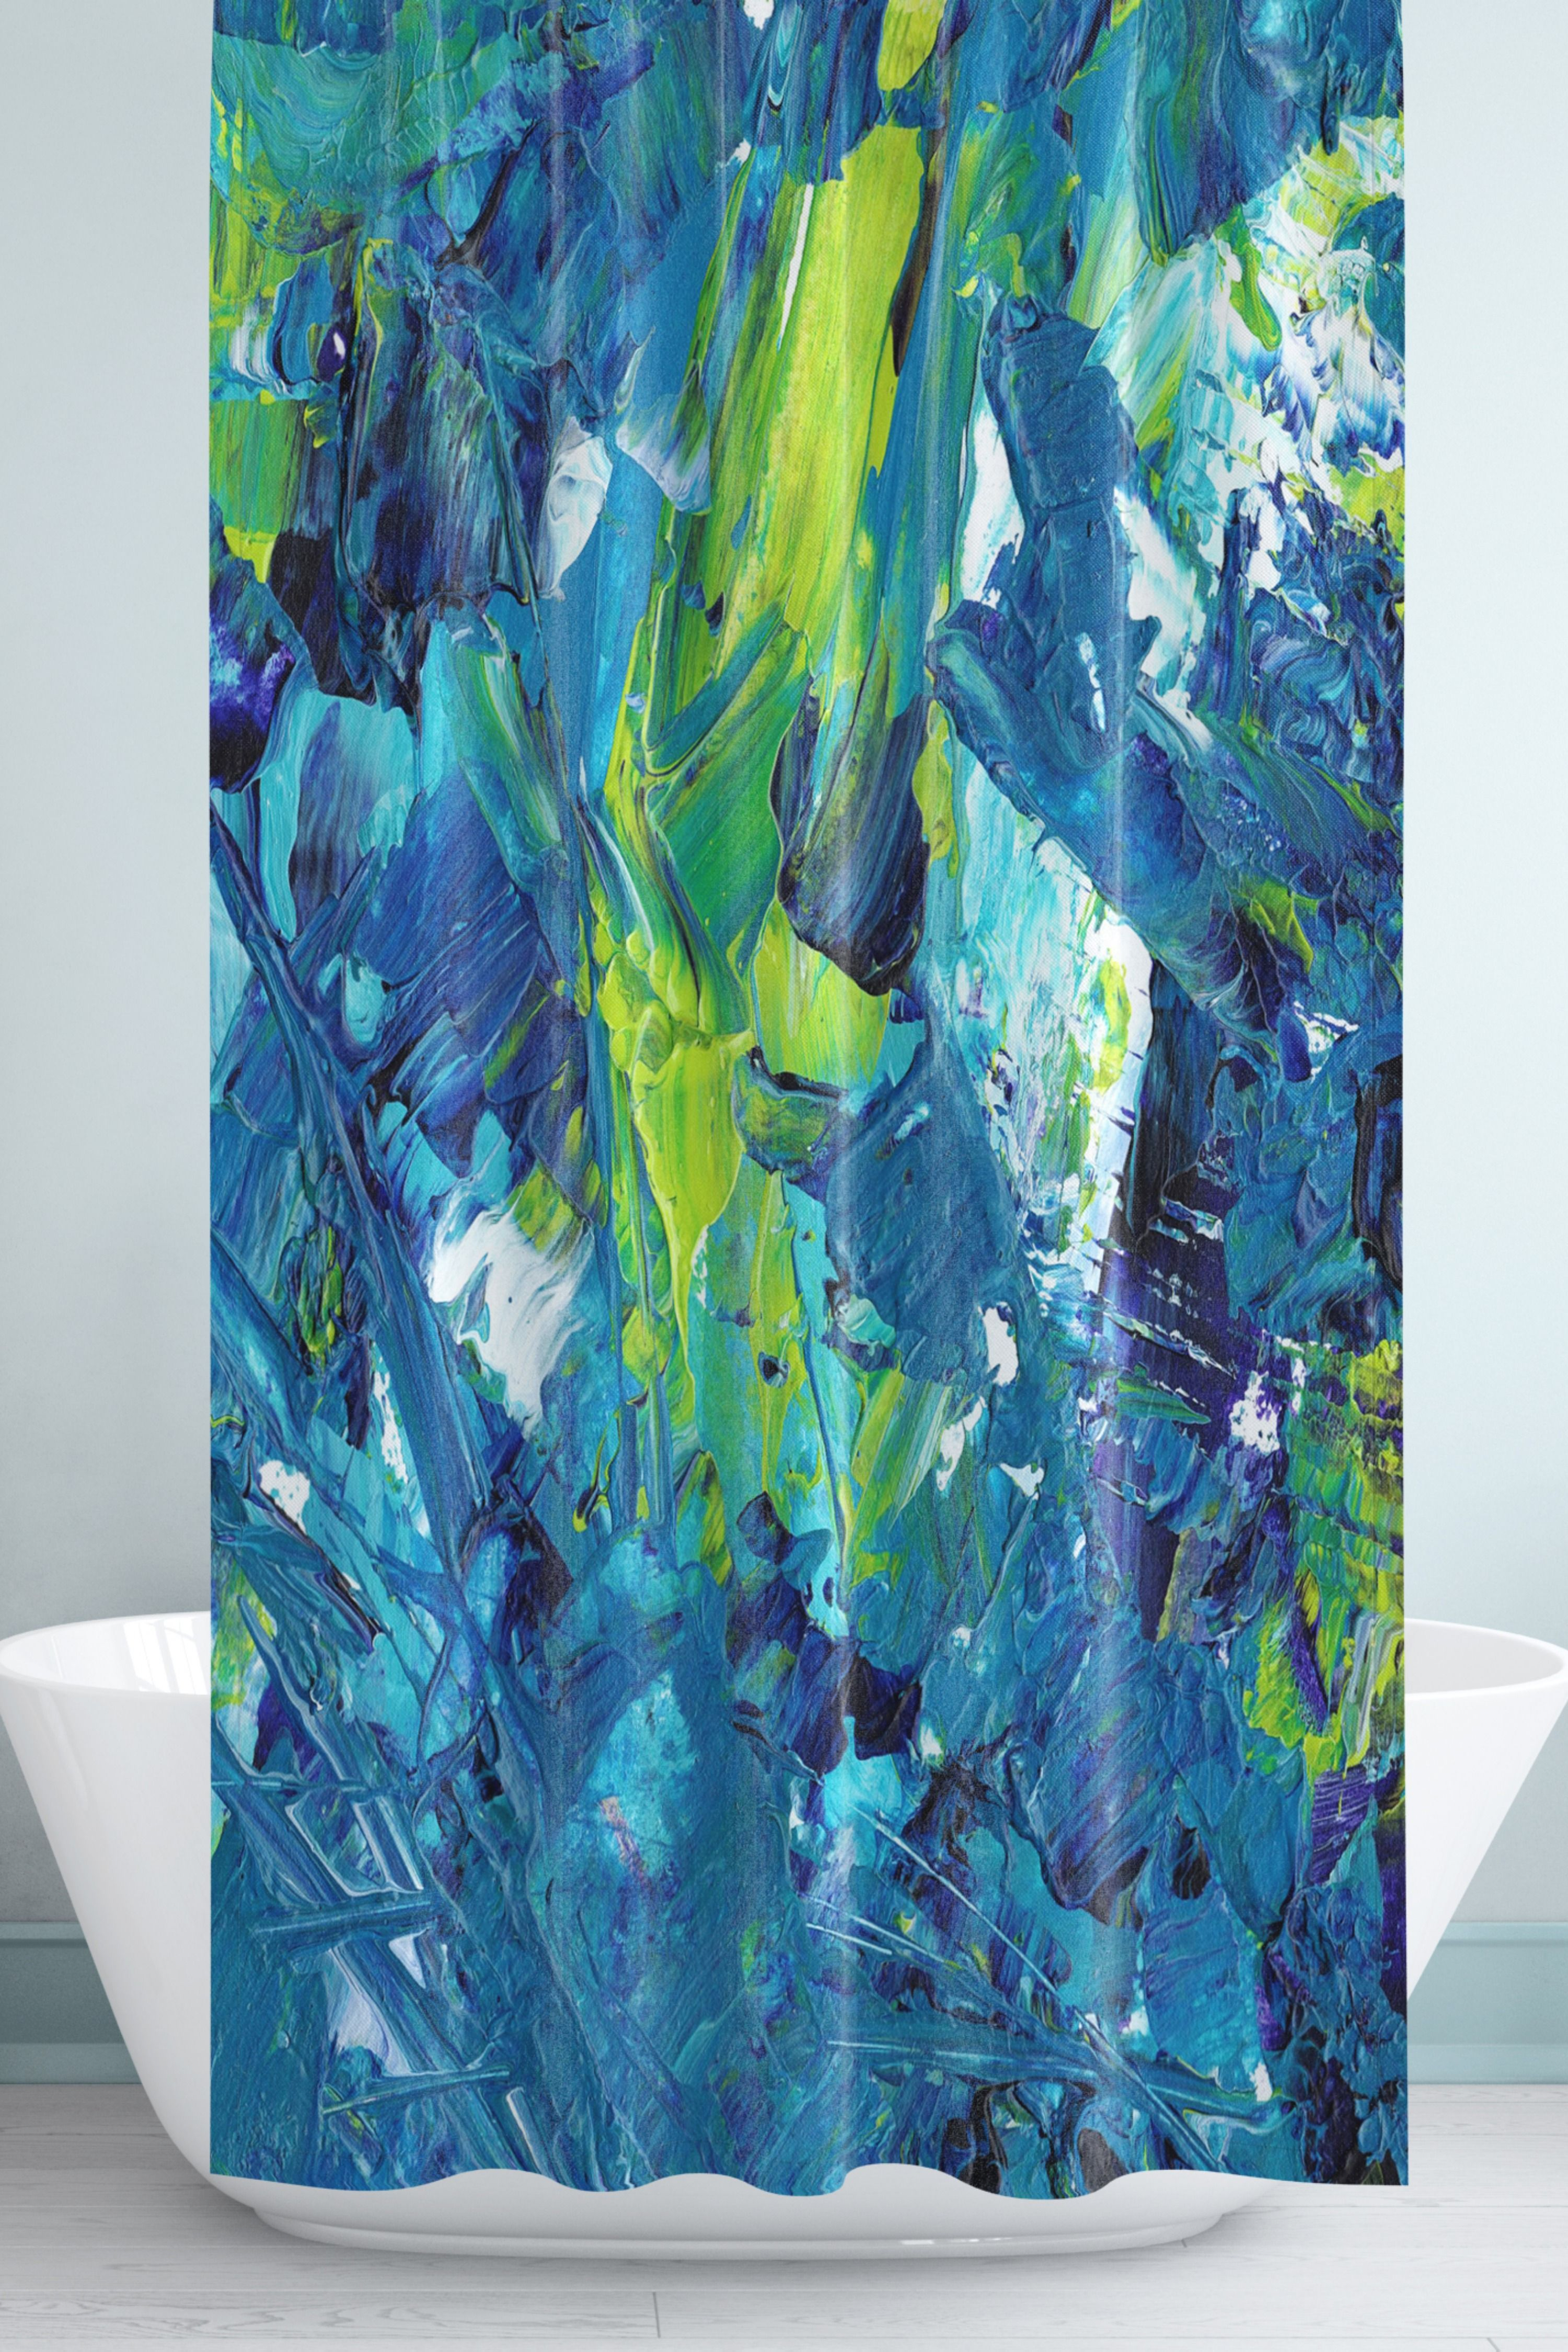 Abstract Art Shower Curtain Blue And Green And White Modern